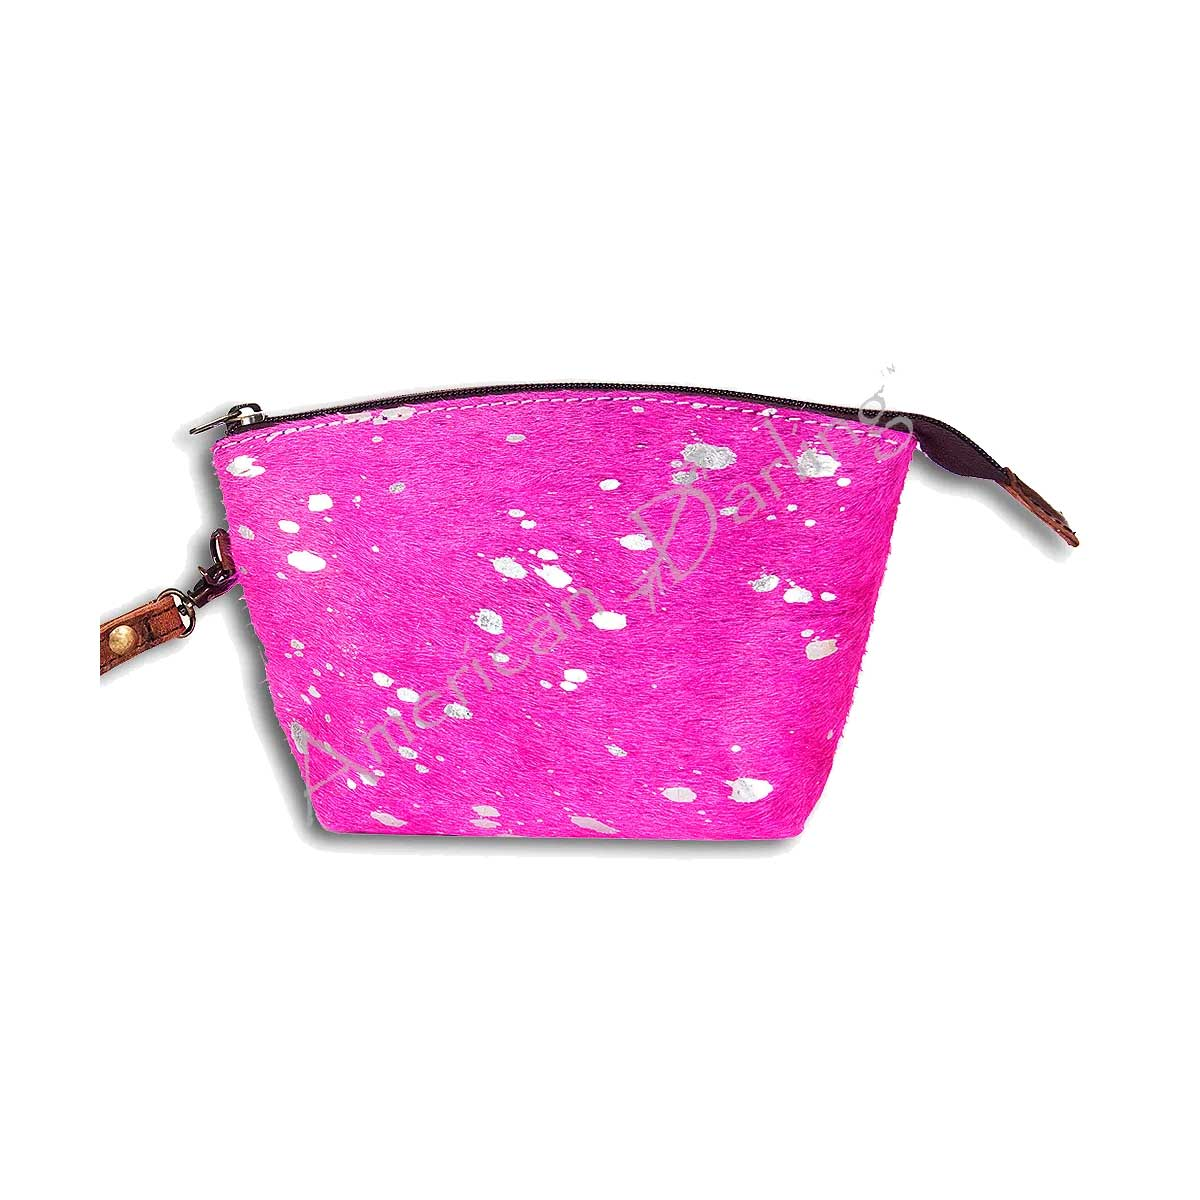 American Darling Small Cosmetics Handbag - Pink